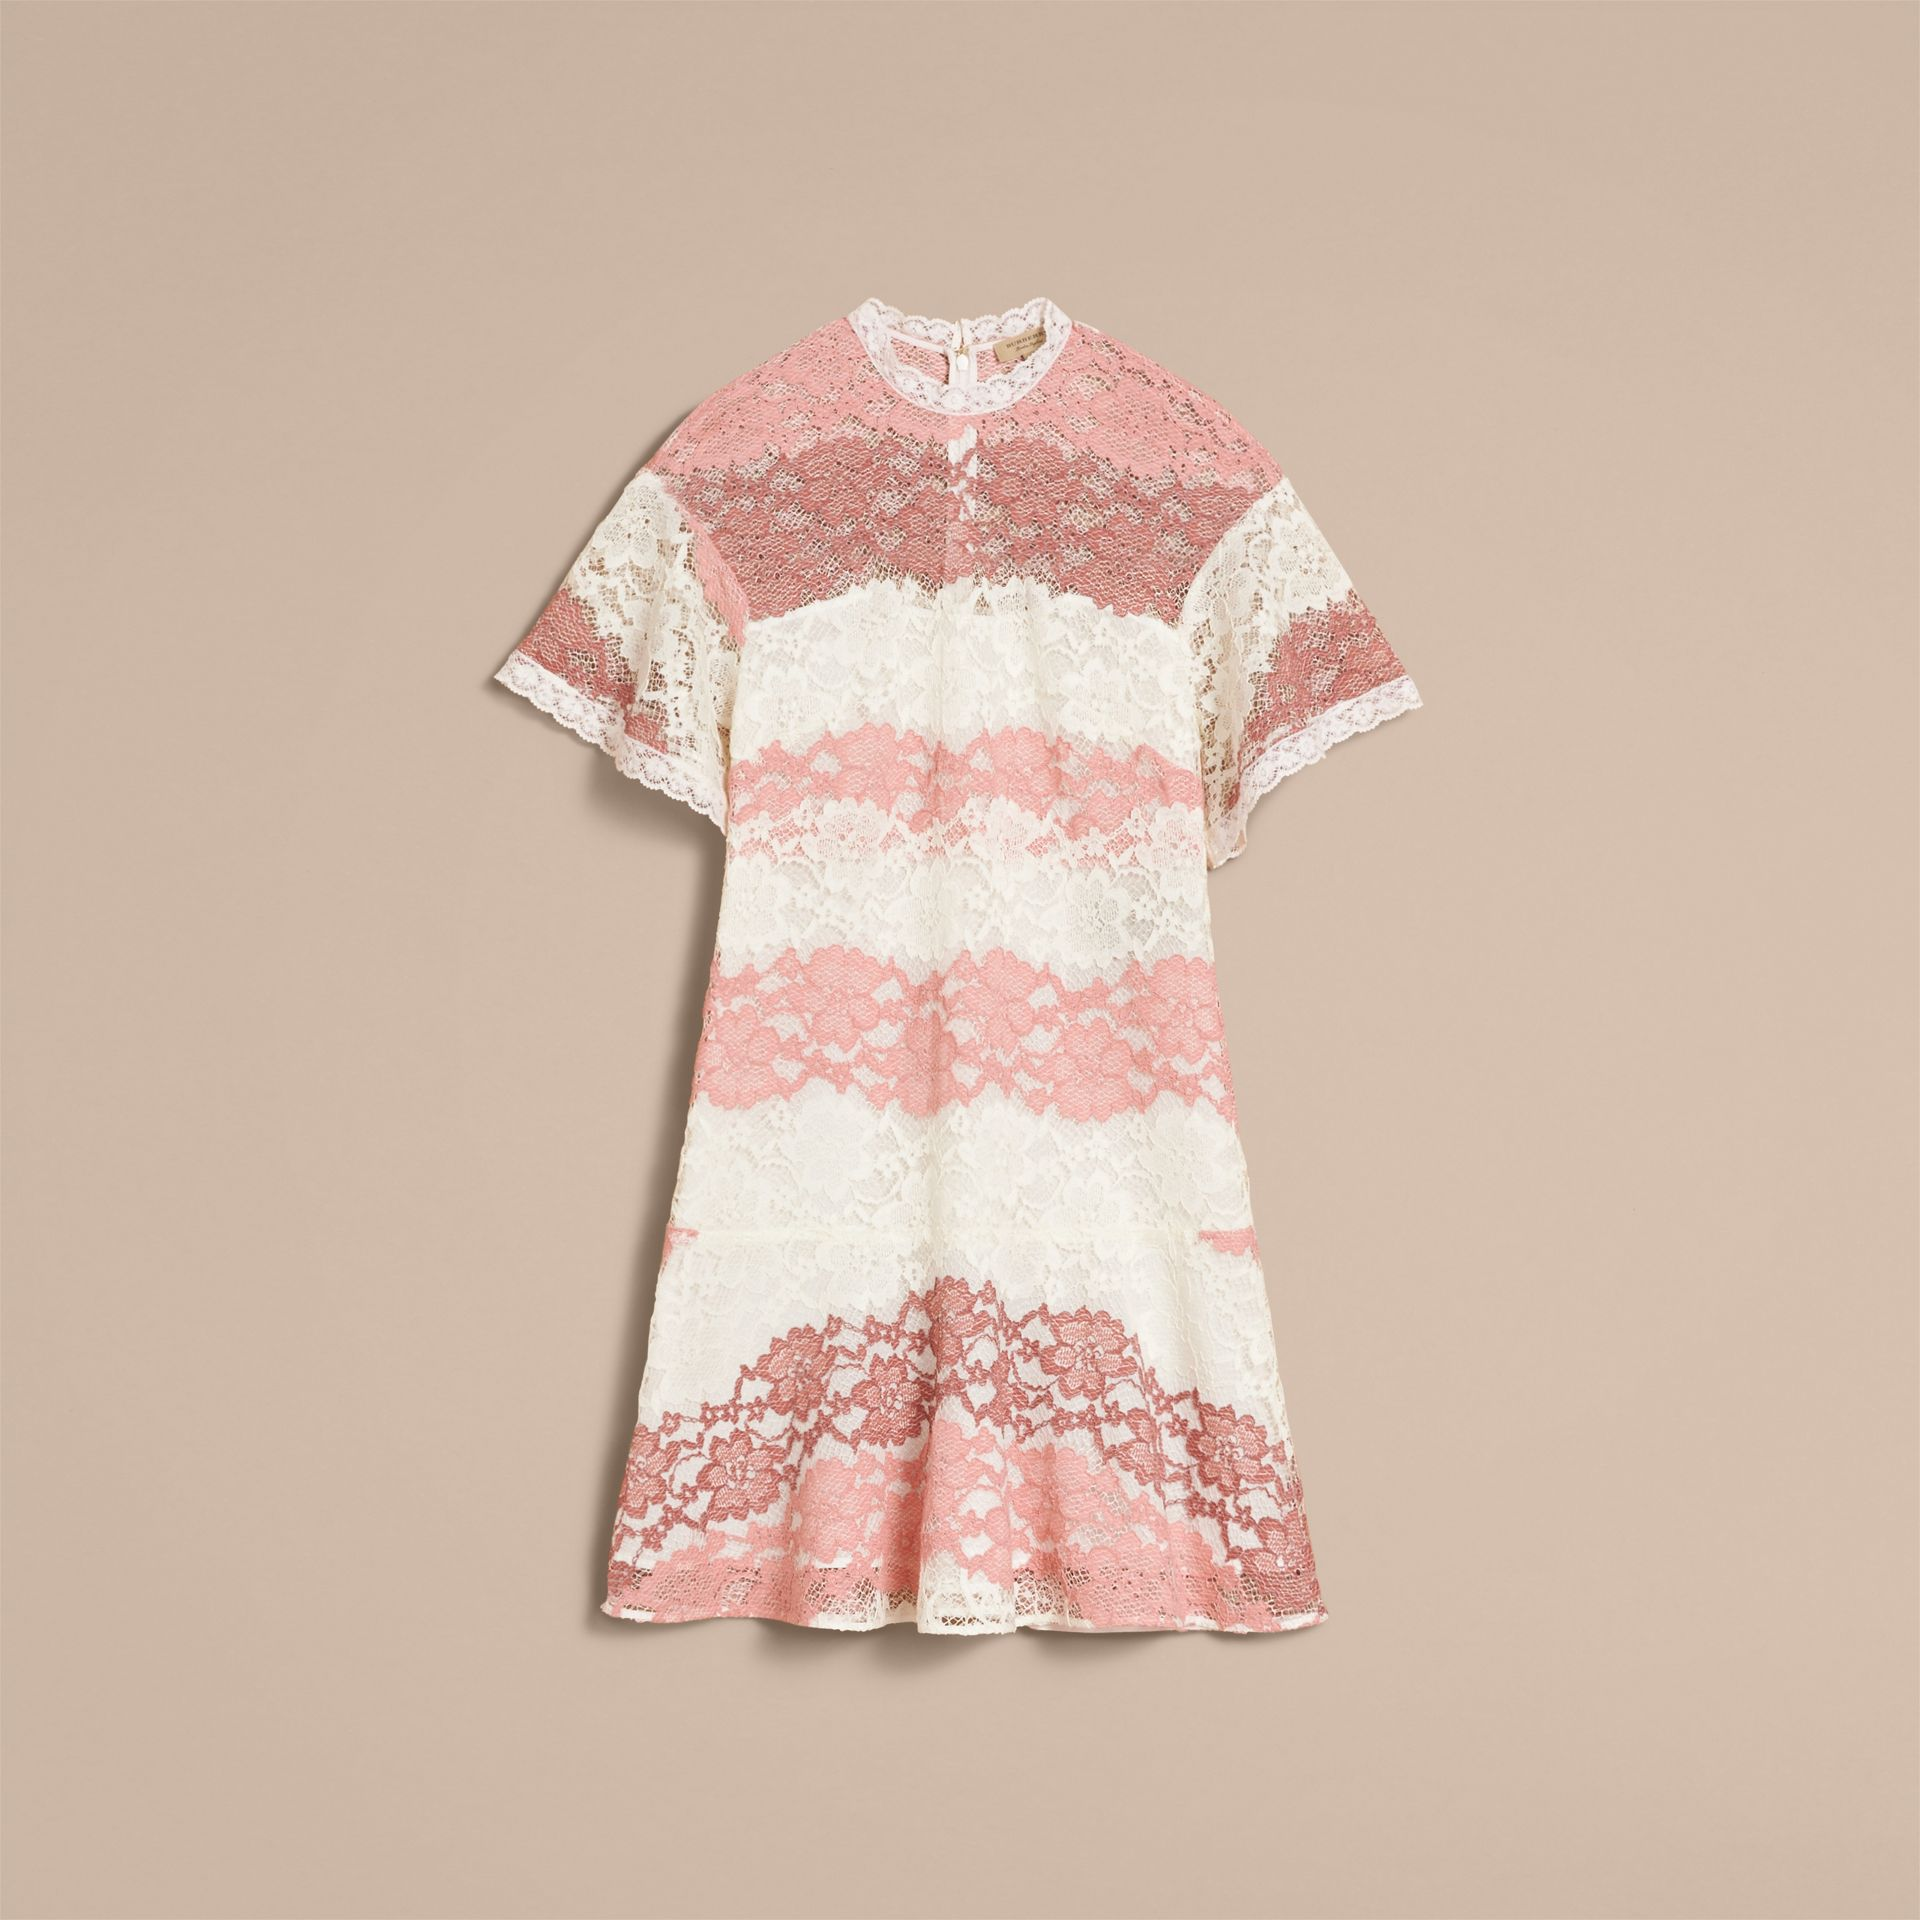 Floral Lace Dress with Flutter Sleeves in Dusty Pink - Women | Burberry - gallery image 4